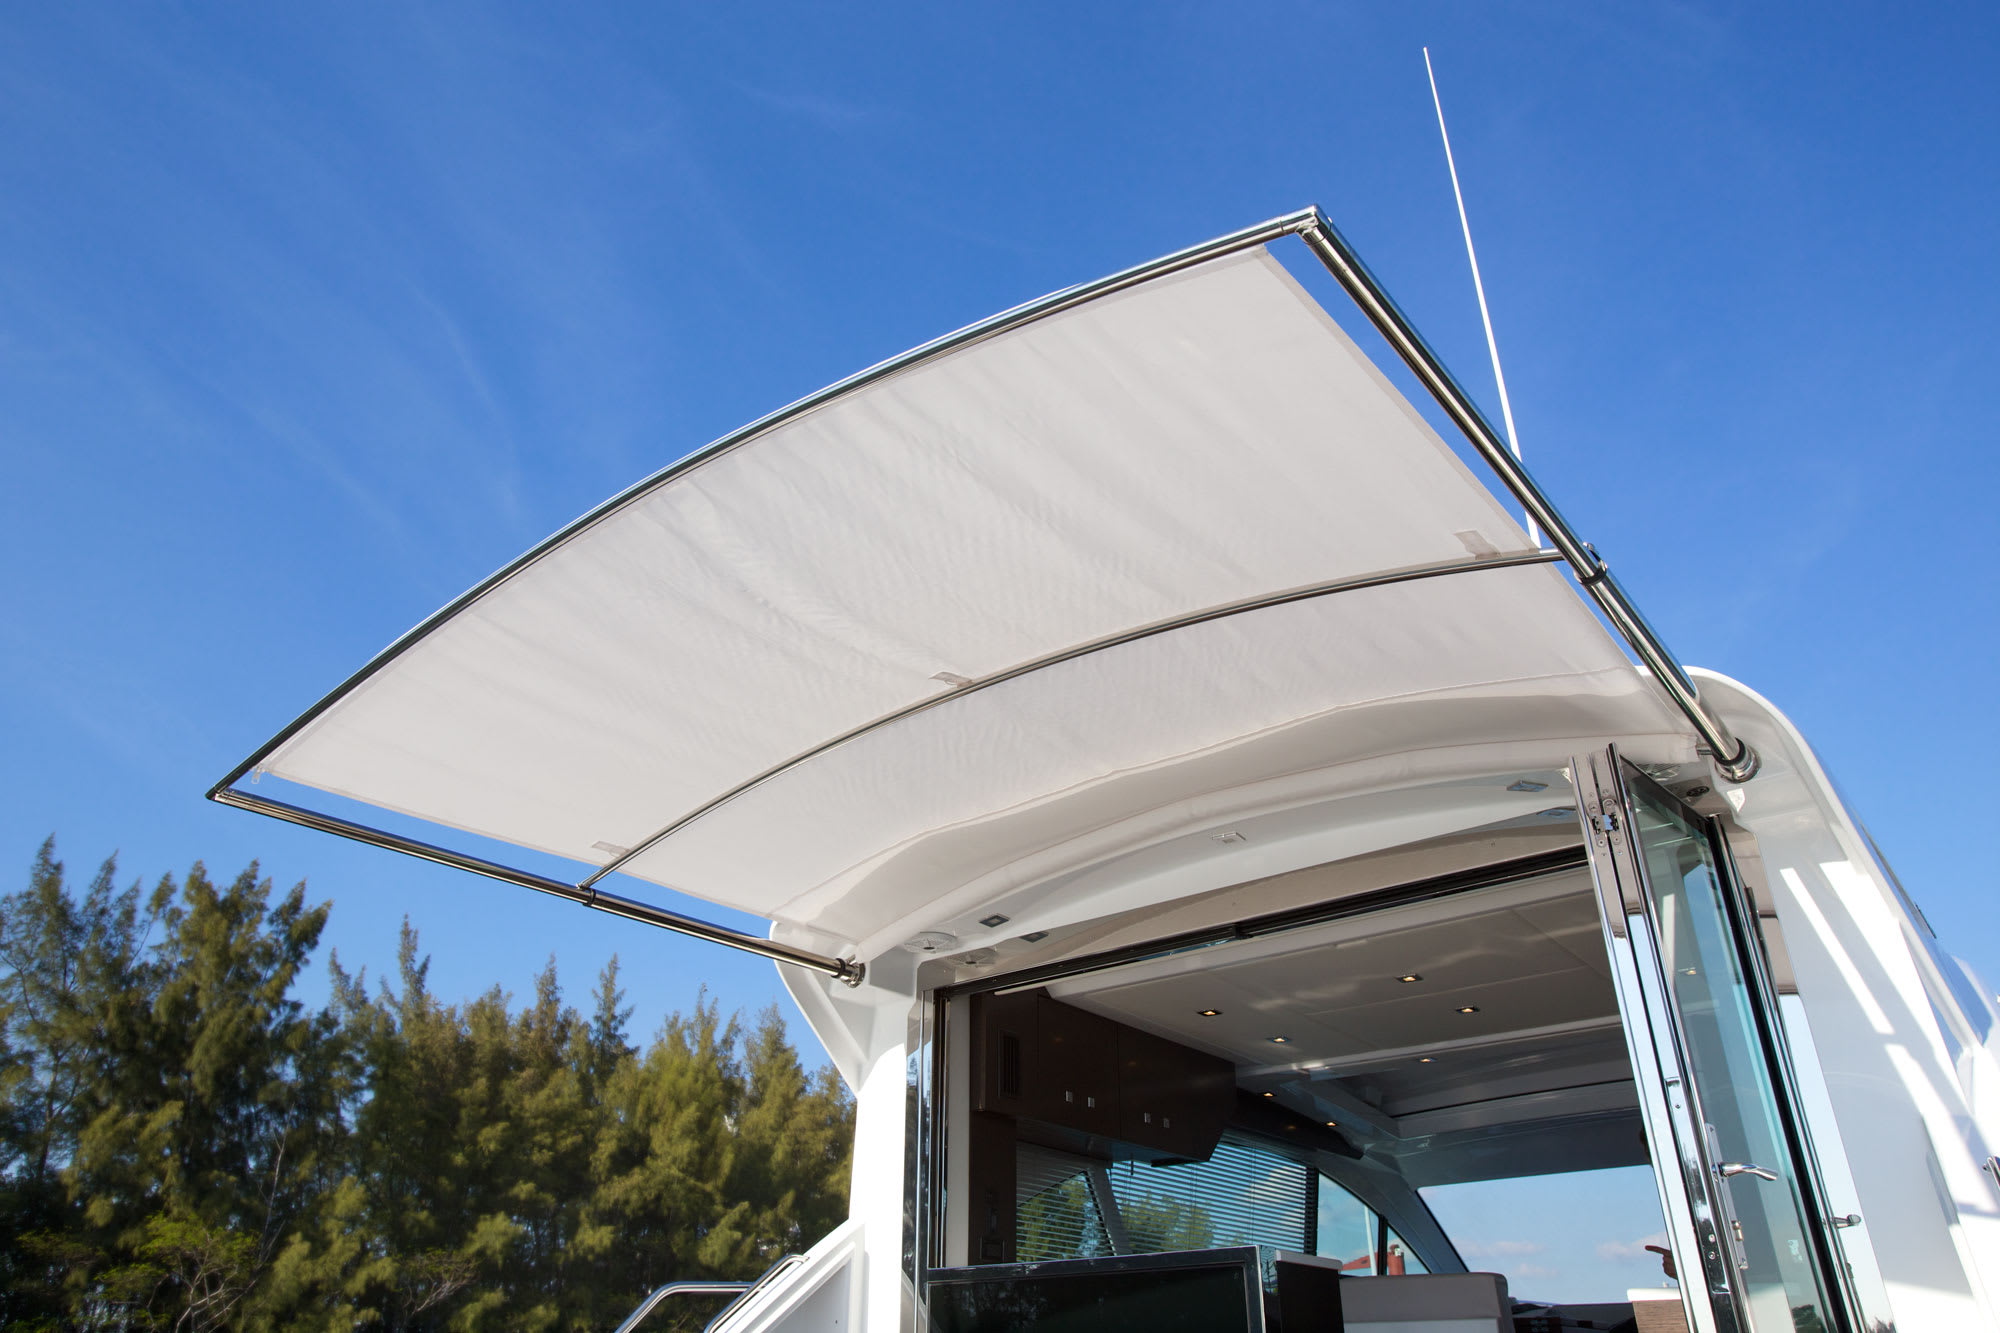 Shade Systems that Quietly Transform Boat Designs